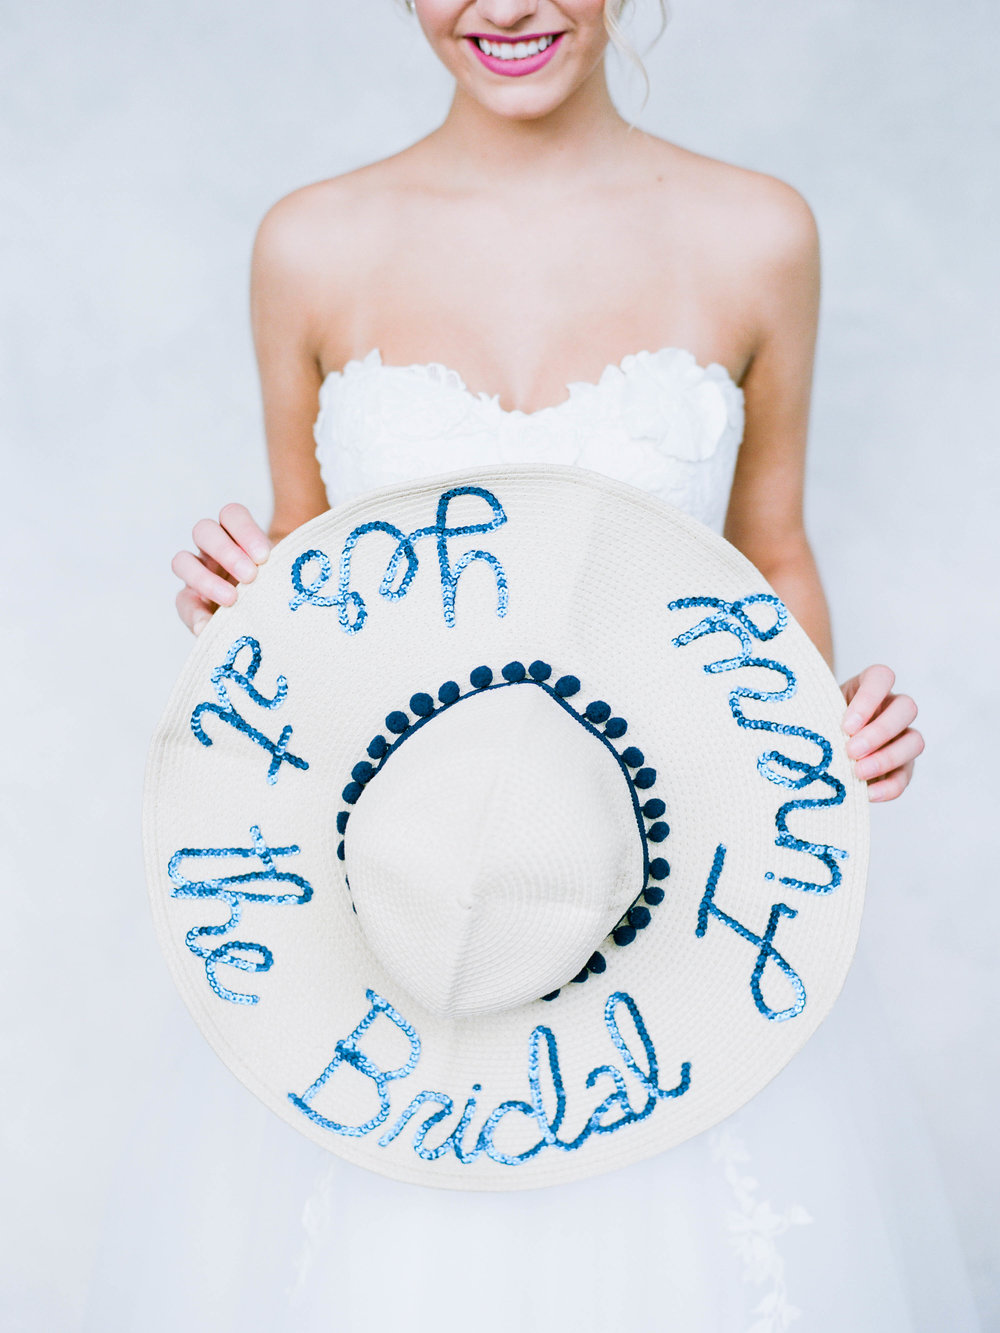 Bridal Shop in Orlando Featuring Designer Wedding Dresses & Accessories